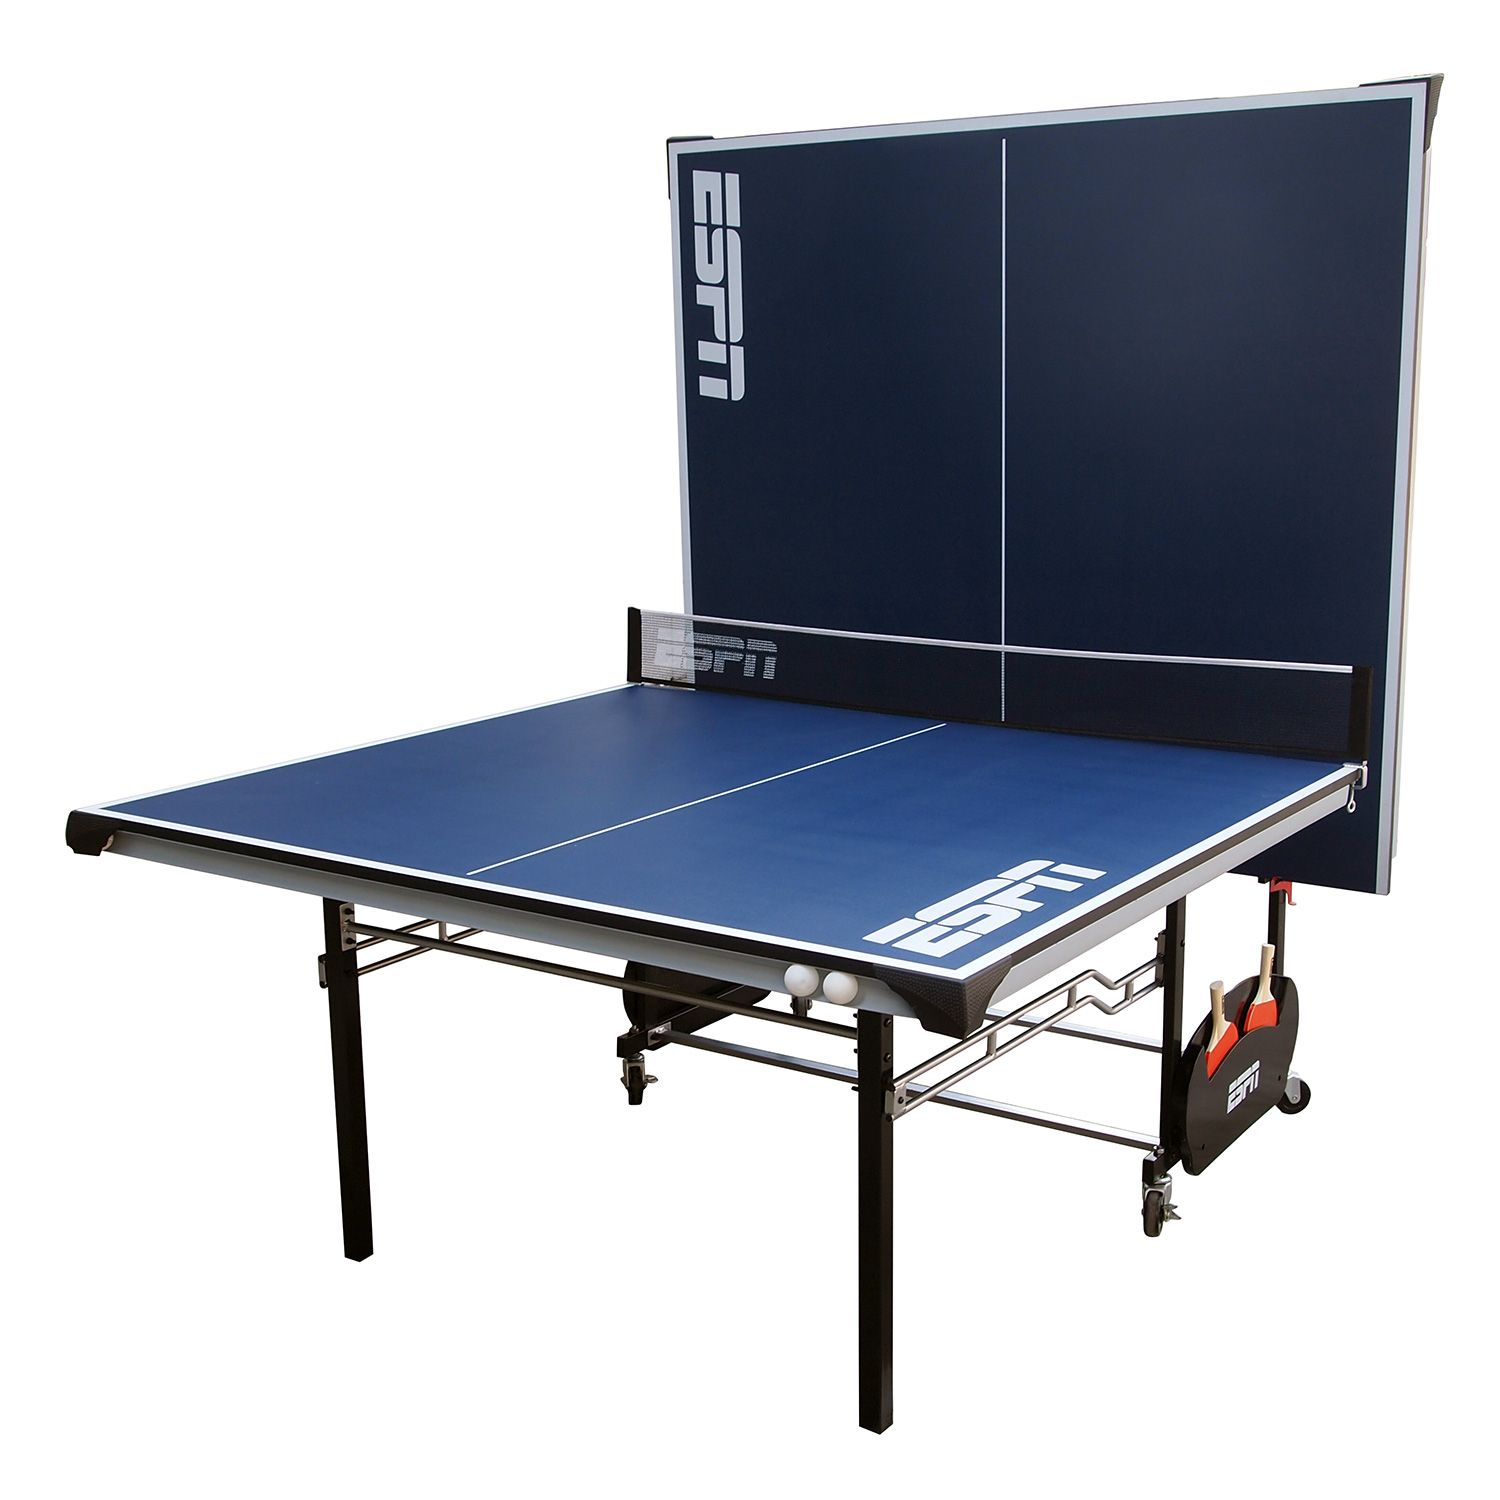 Table Tennis Picture.jpg